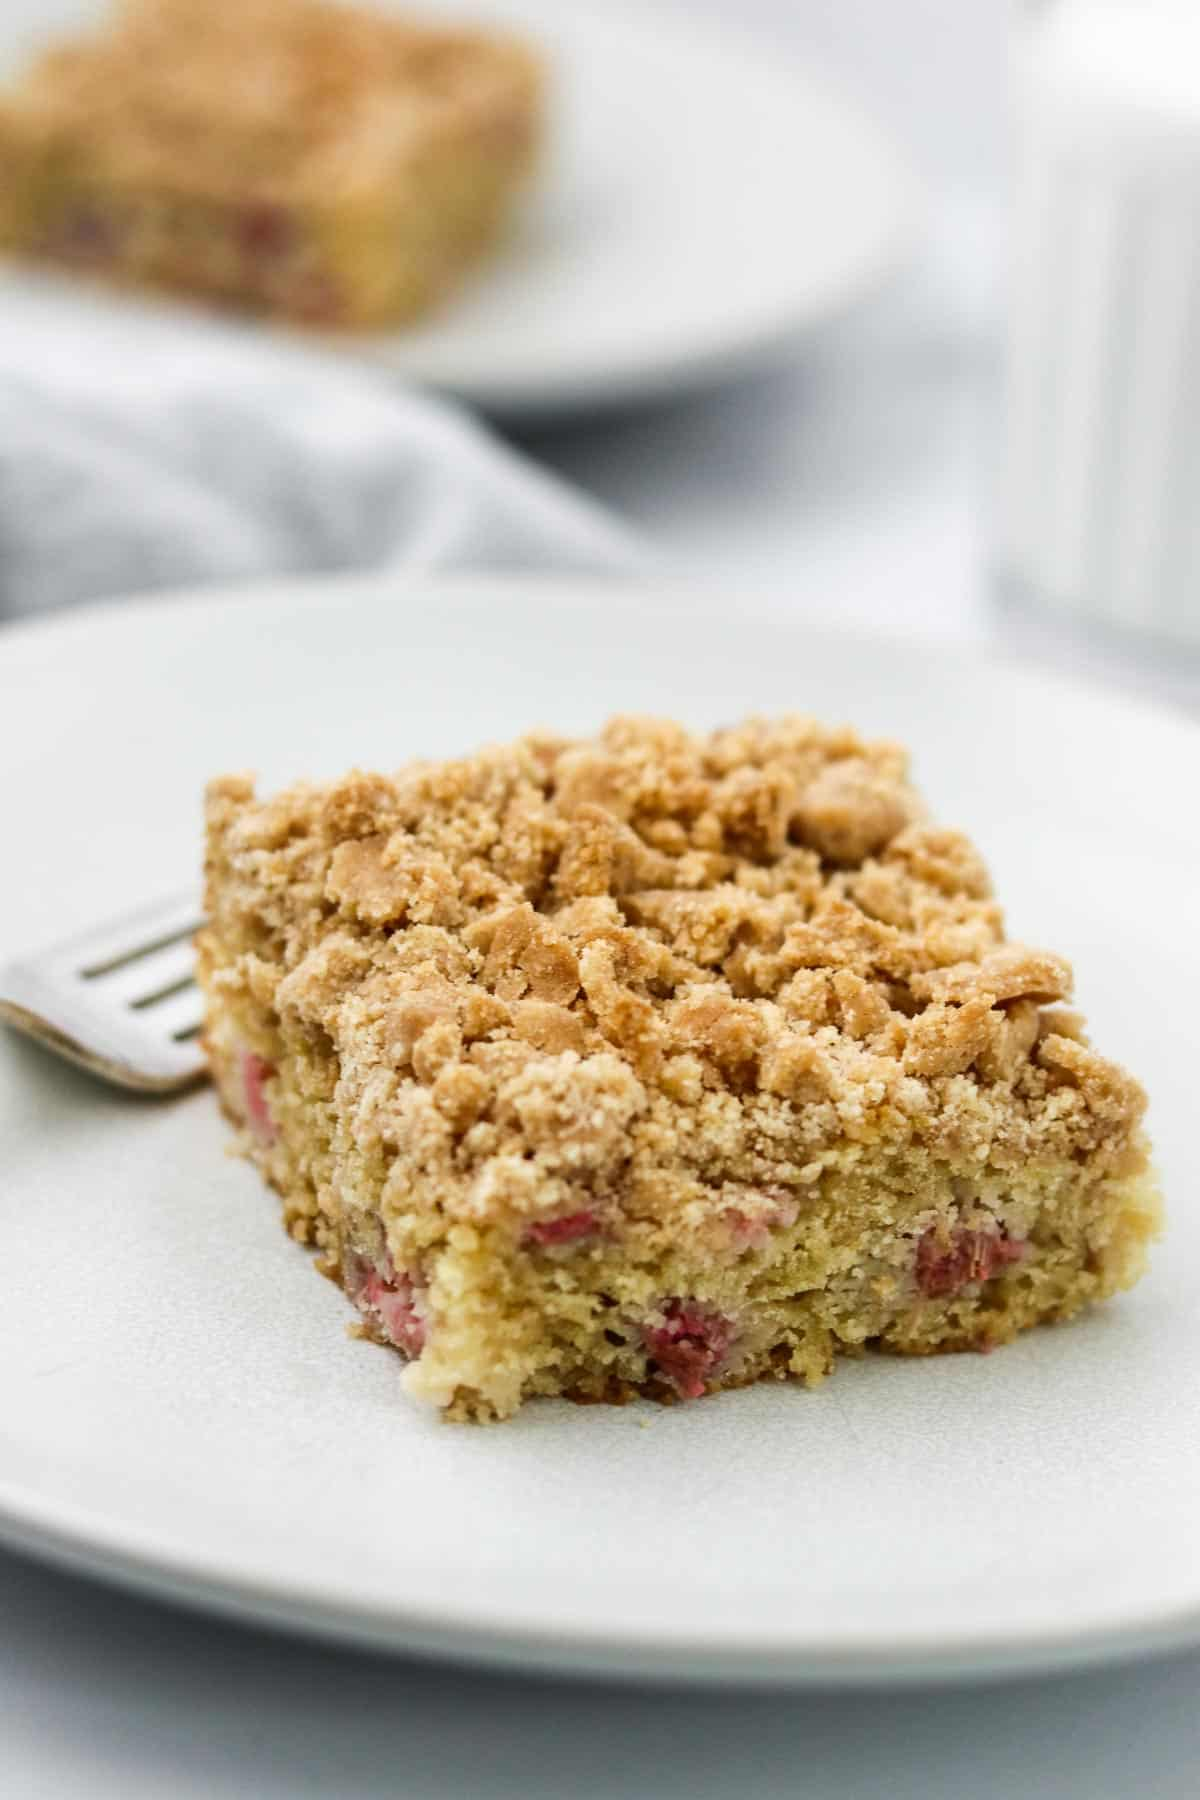 Rhubarb cake on a plate with a fork next to a glass of milk.